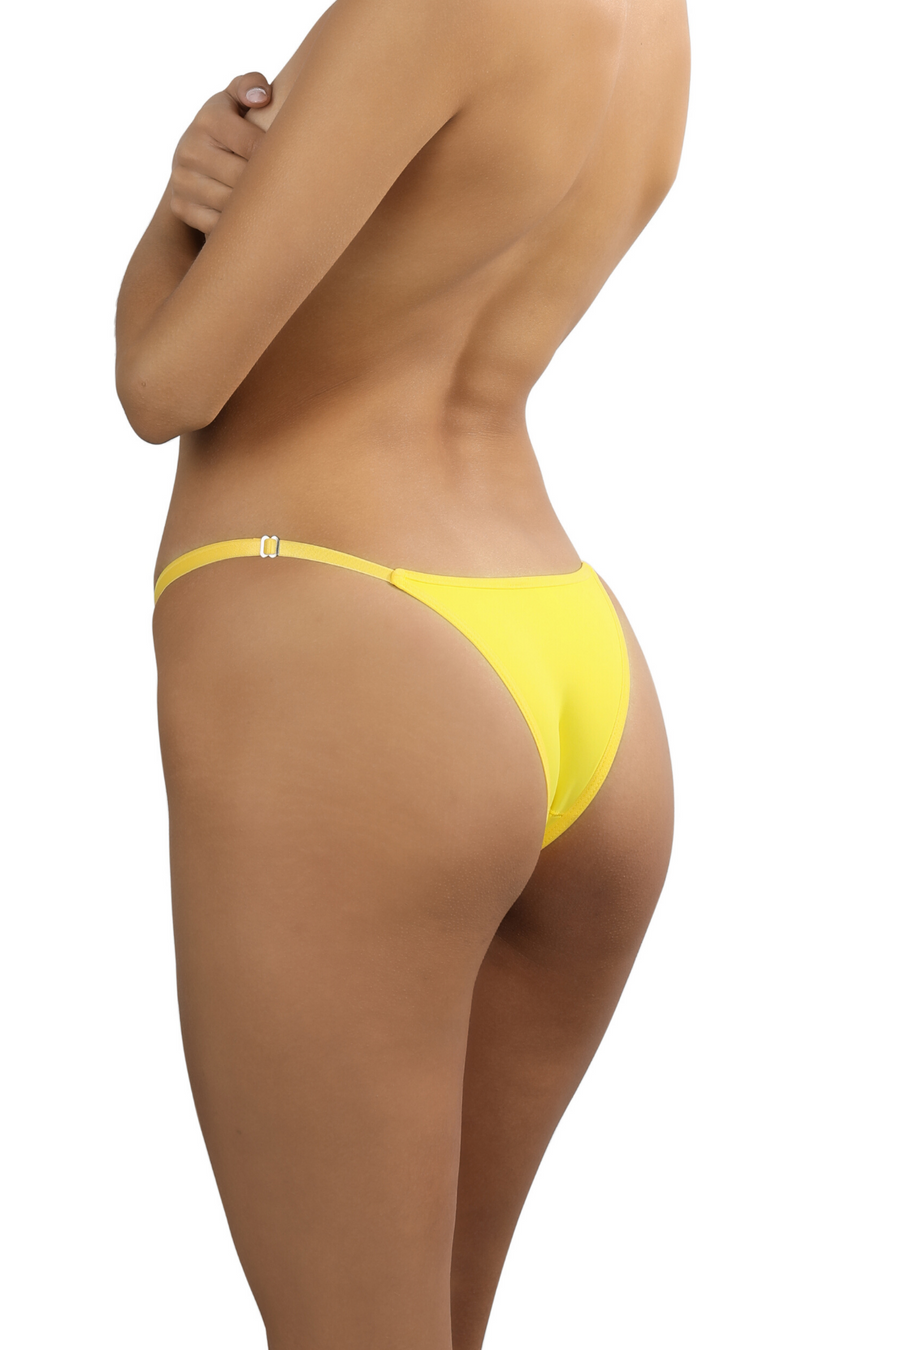 yellow brazilian string bikini underwear women's